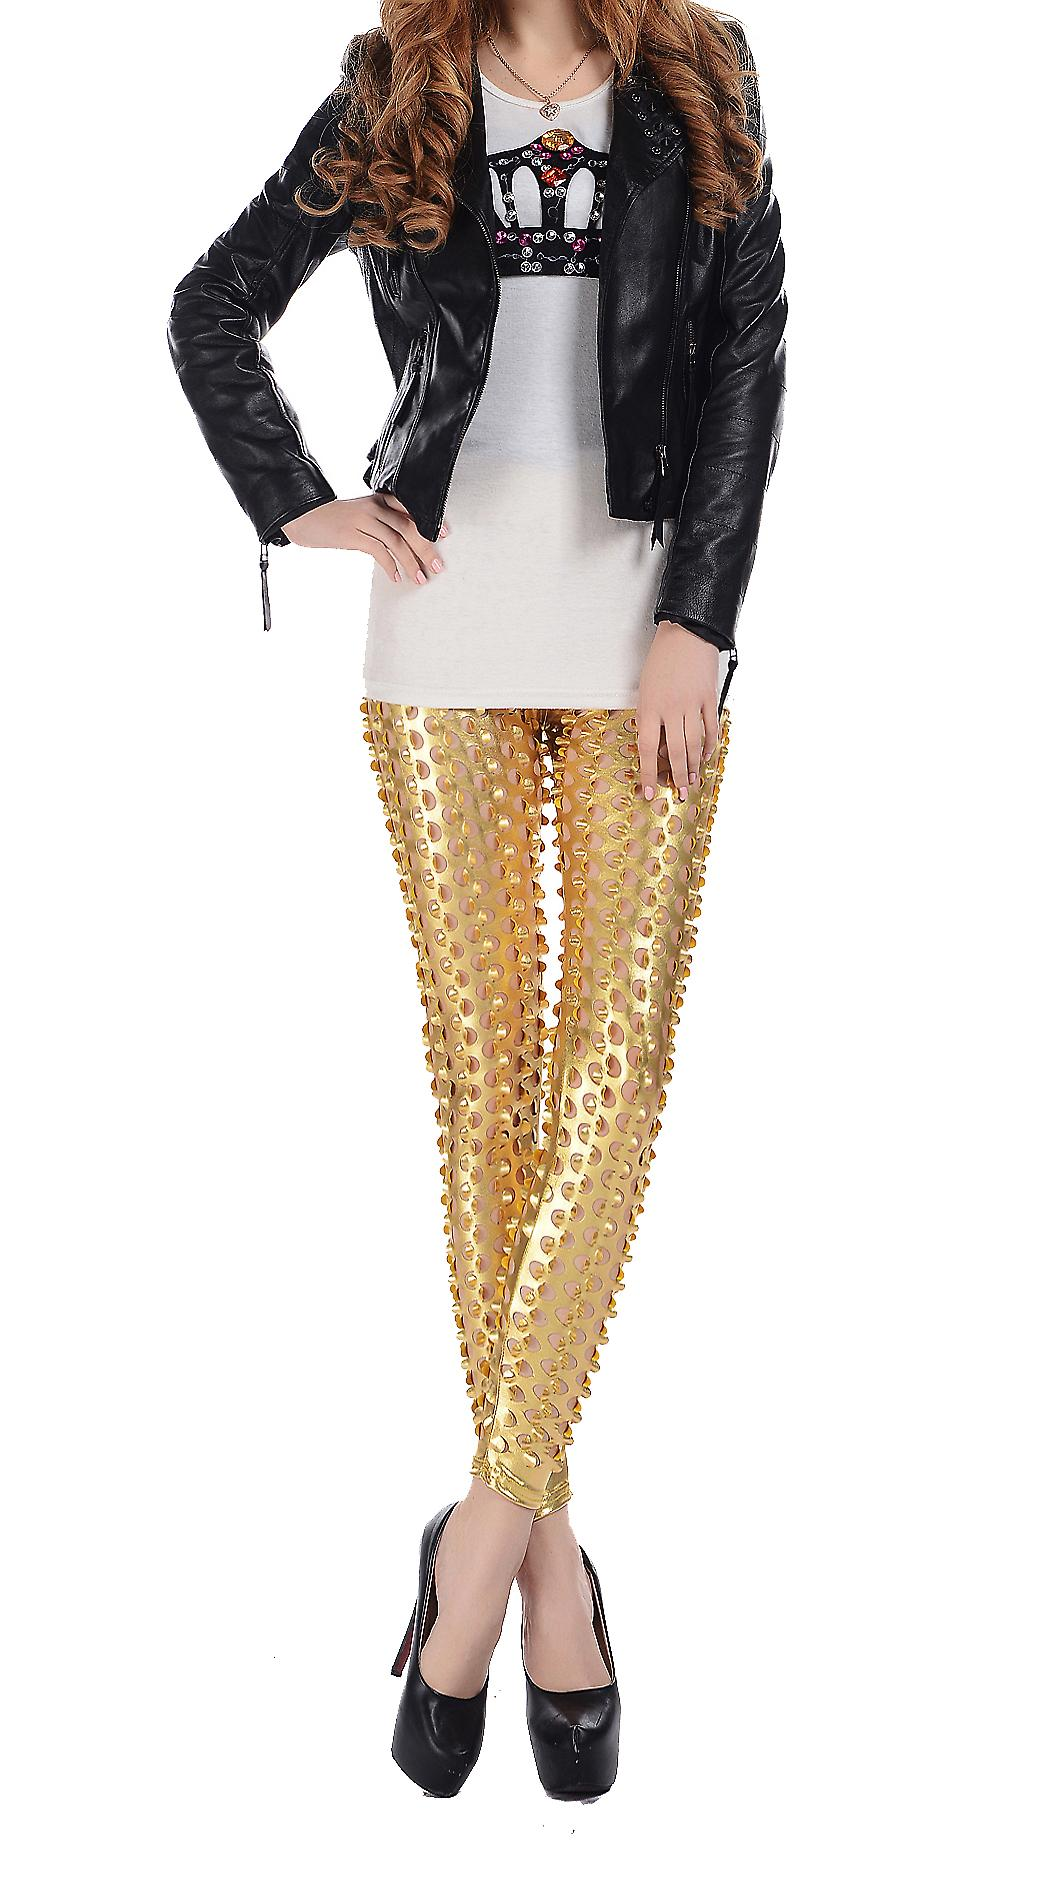 Waooh - Fashion - Spitze Legging Fantasie